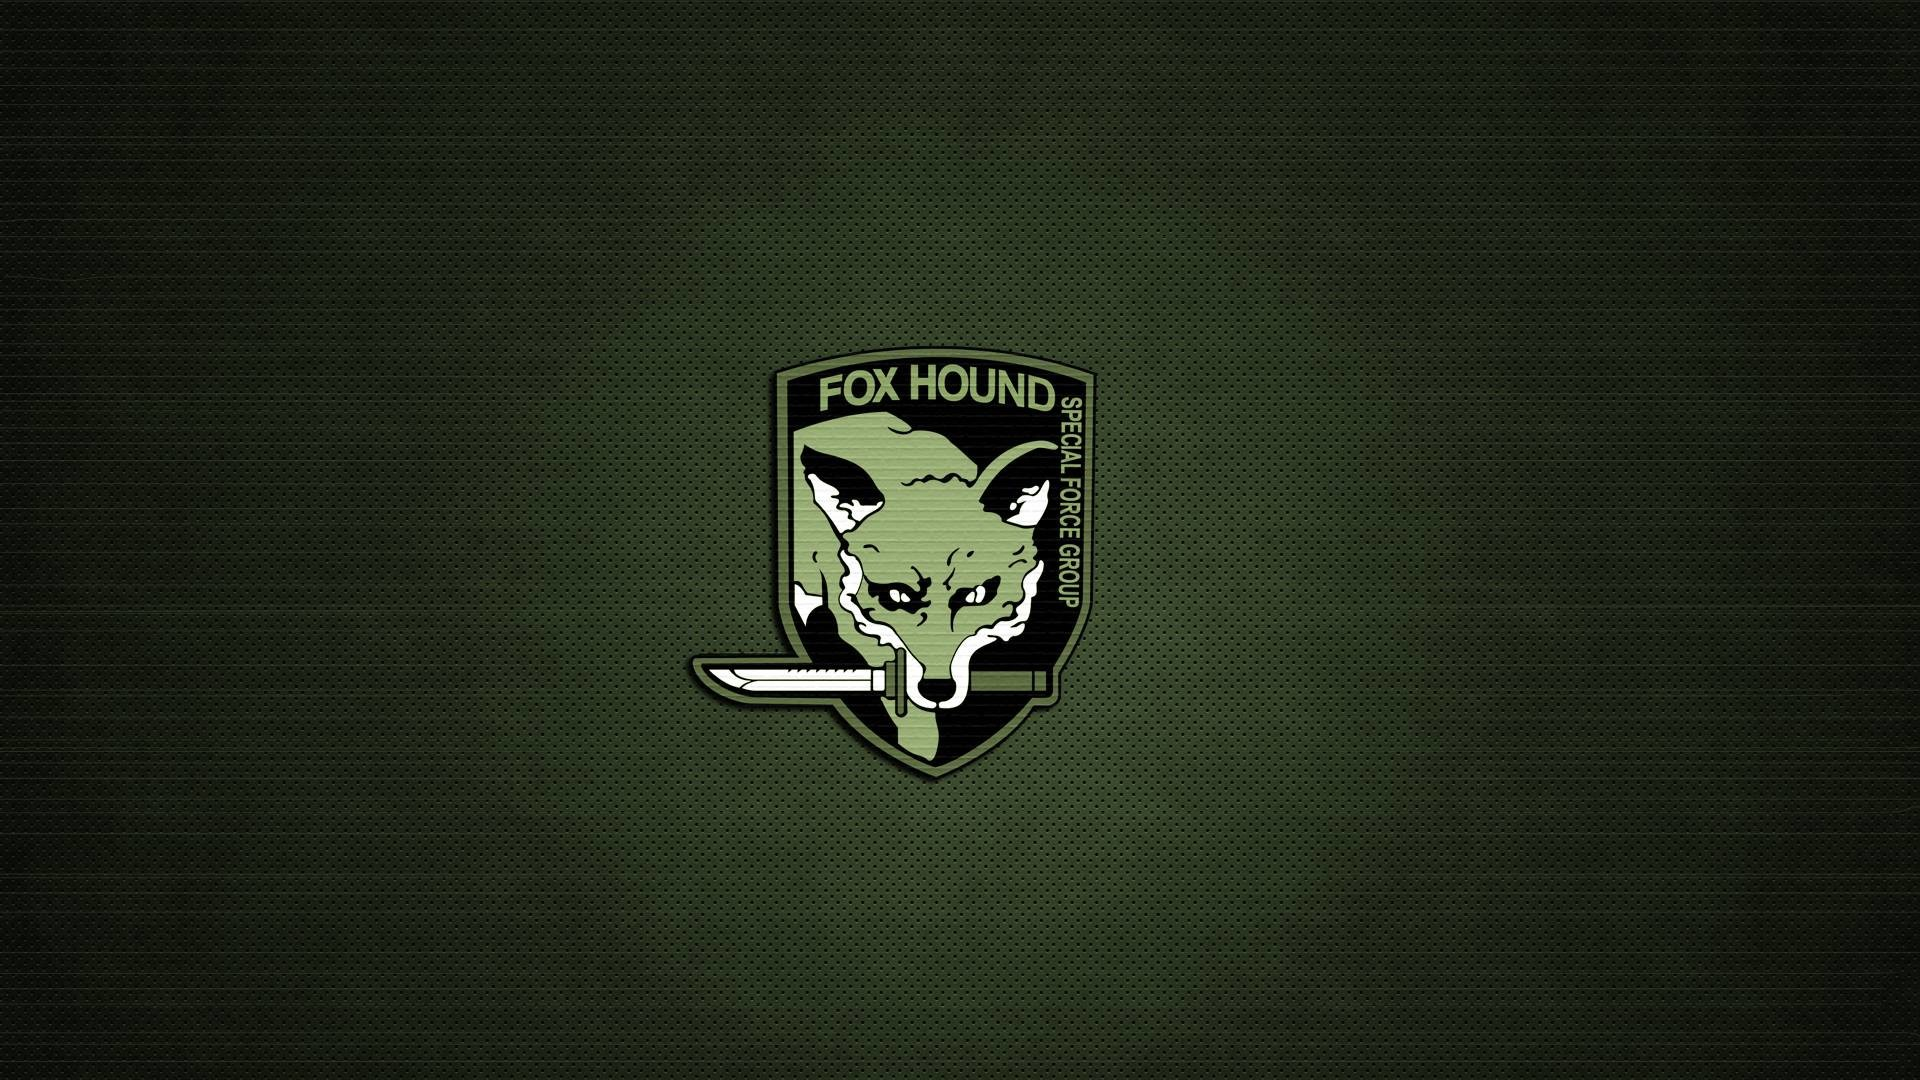 Res: 1920x1080, Download Metal Gear Solid Fox Hound Green wallpaper,Download .